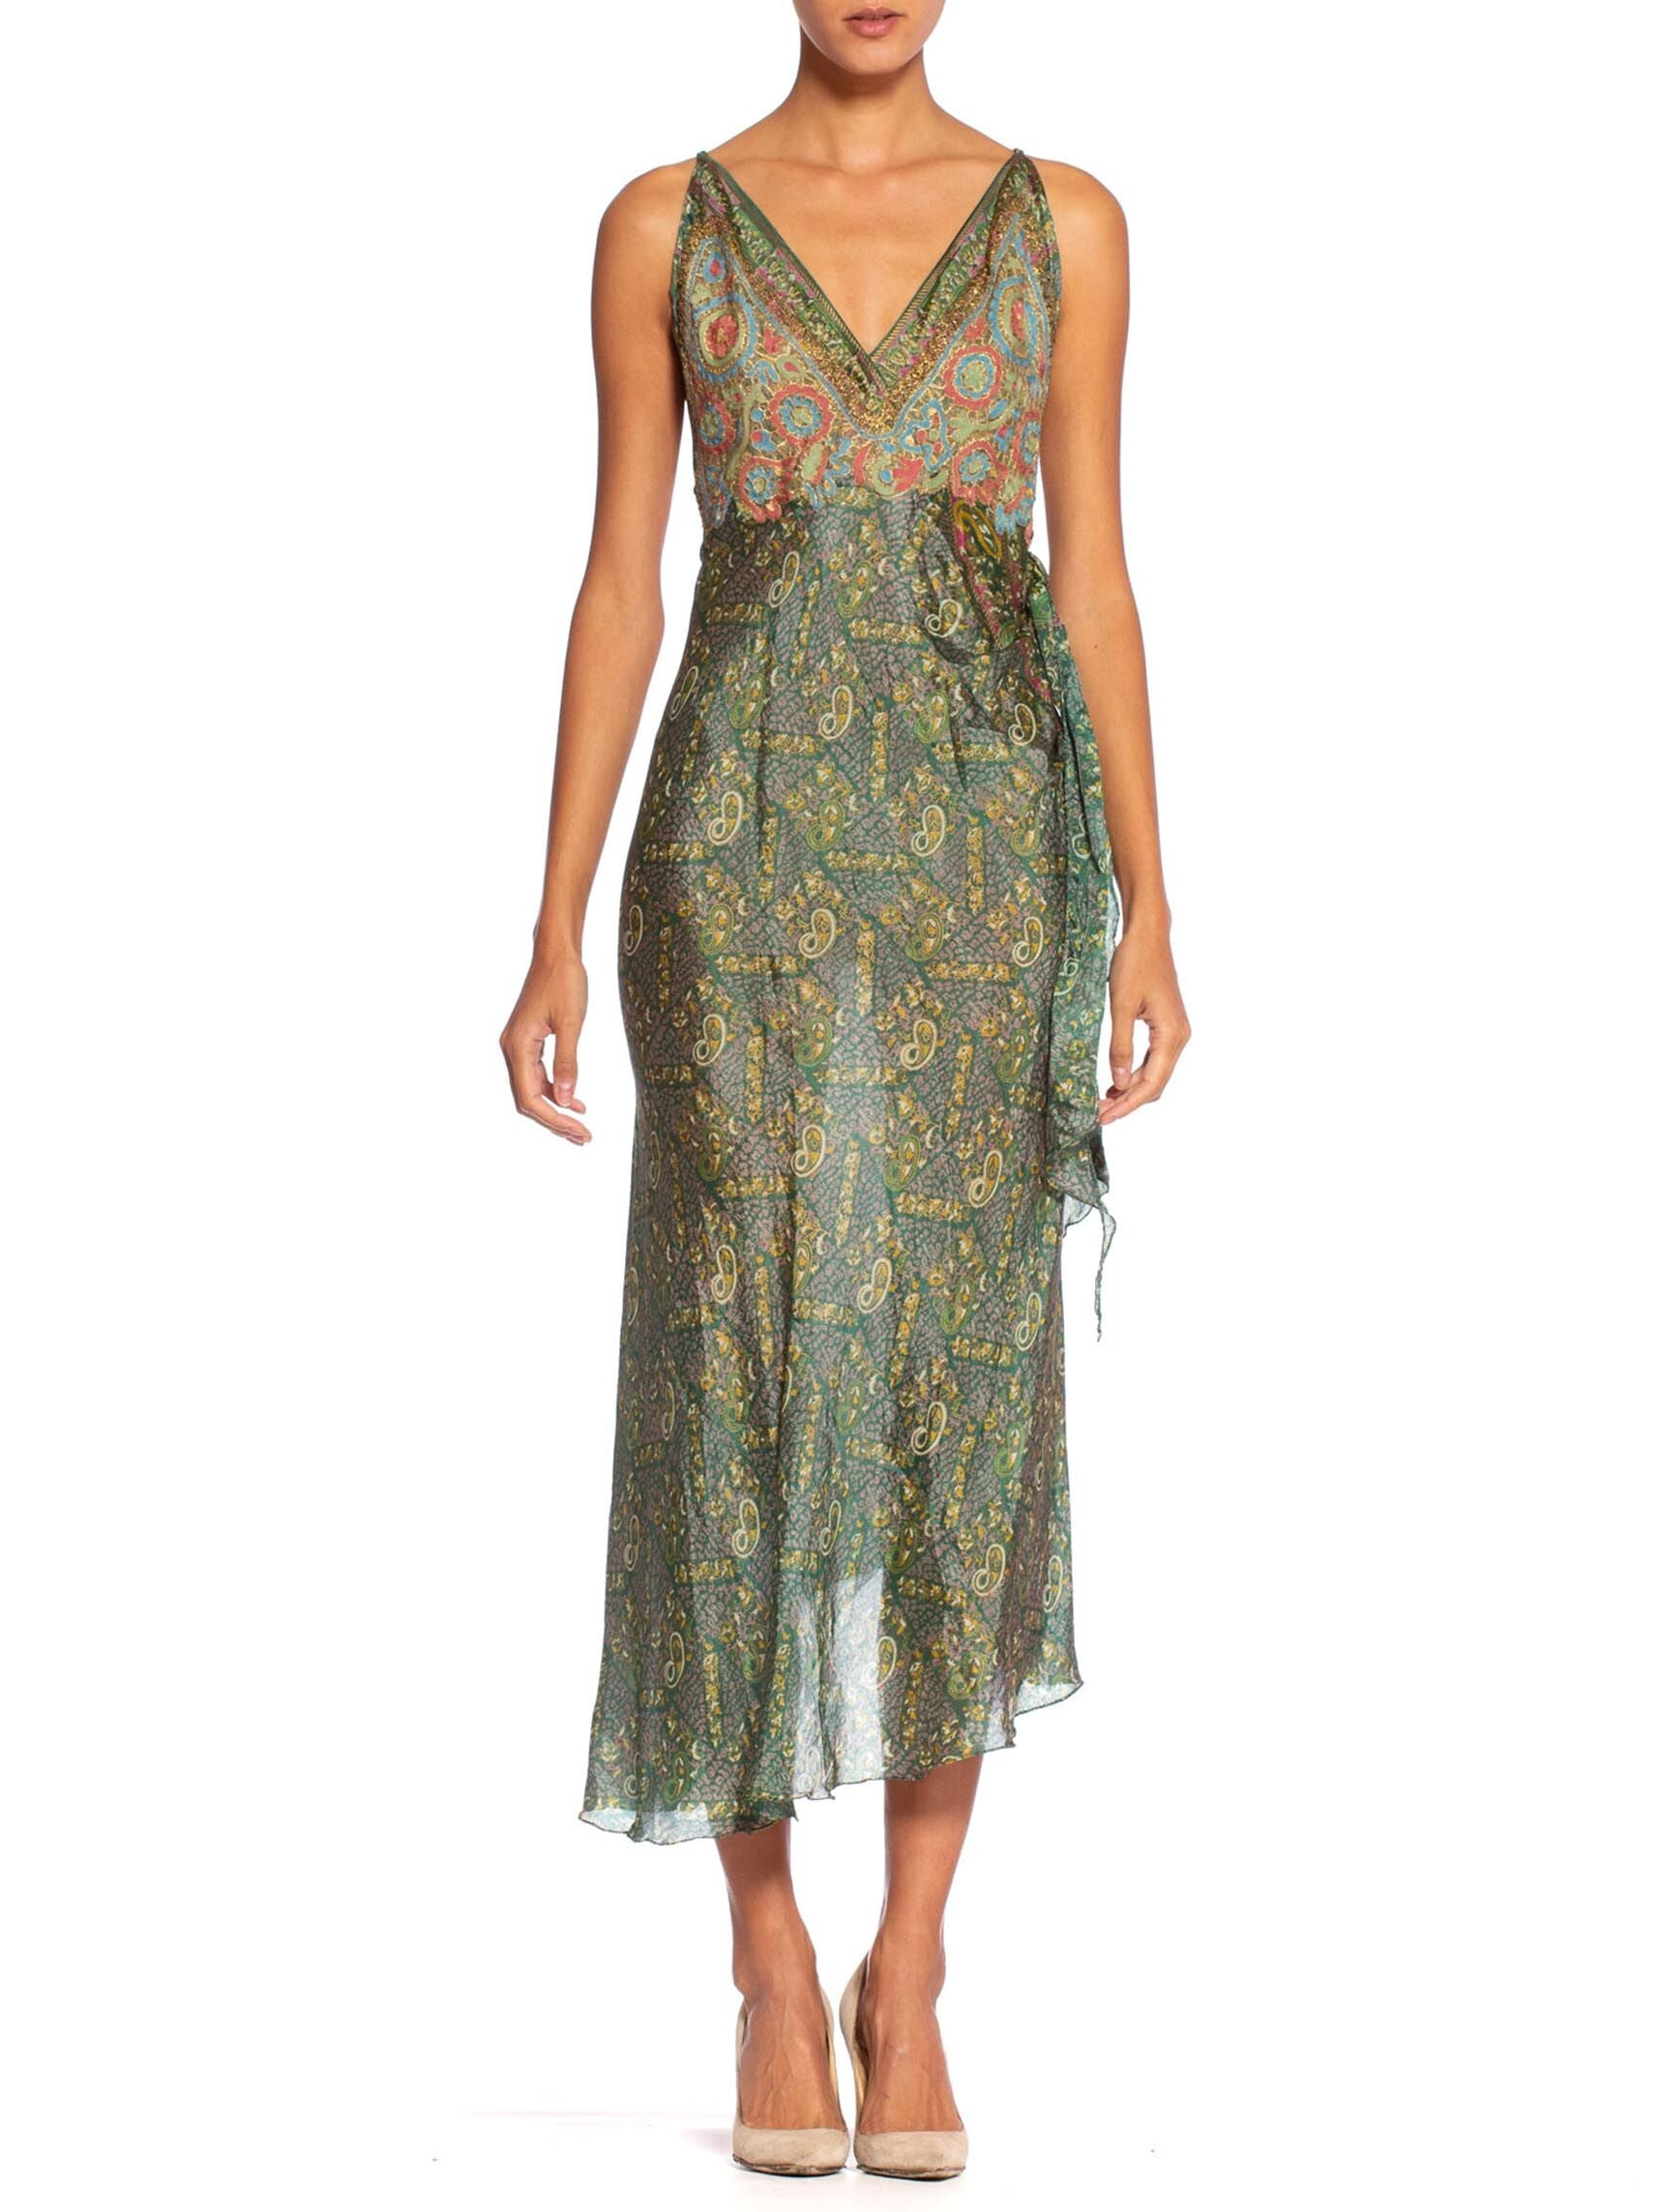 1960'S Morphew Collection Bias Backless Indian Print Dress With Edwardian Metallic Embroidery Gown